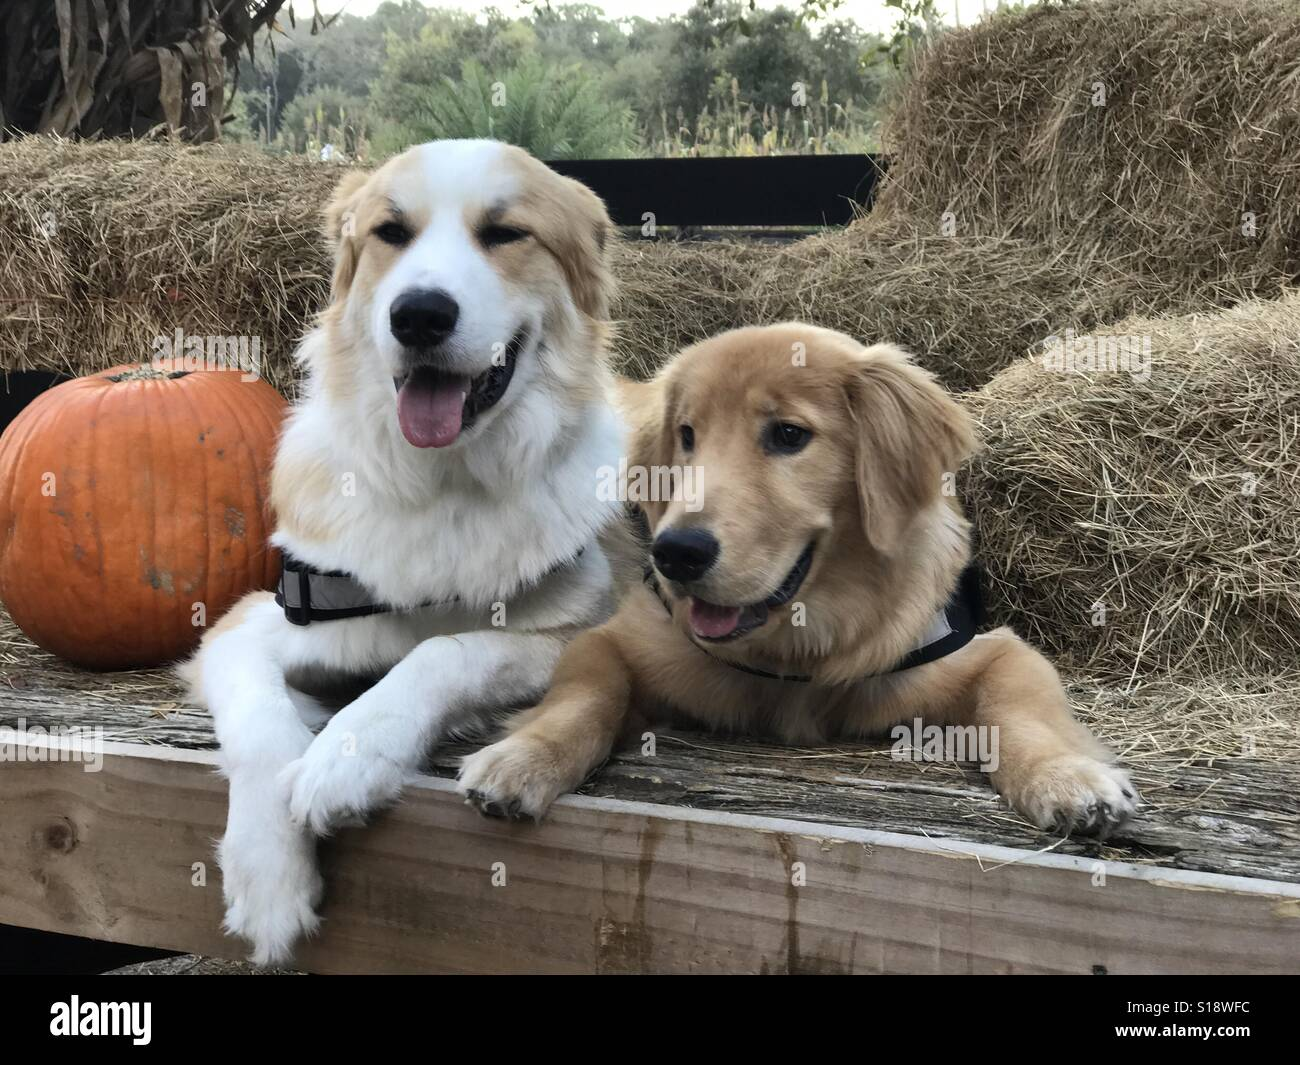 Dogs sitting next to hay. - Stock Image